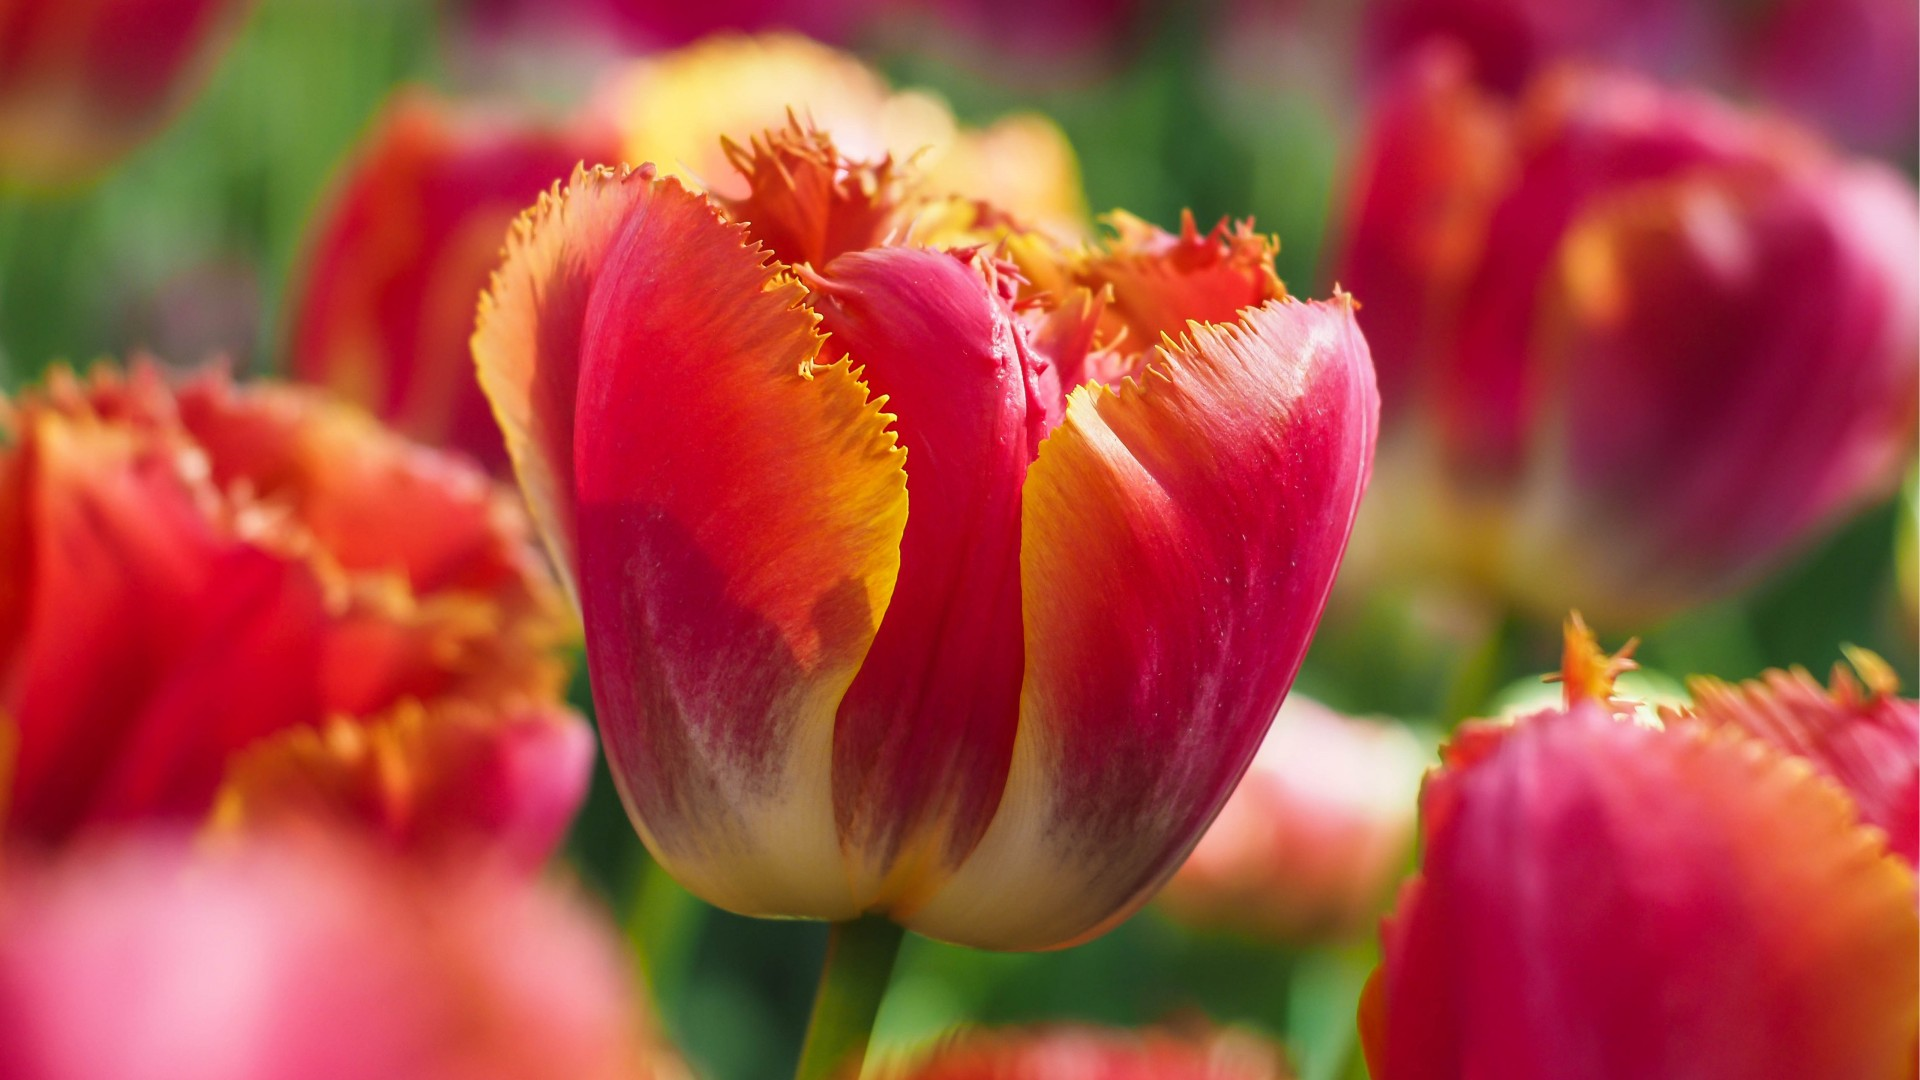 Beautiful 3d Wallpaper For Android Tulip Flowers 5k Wallpapers Hd Wallpapers Id 18404